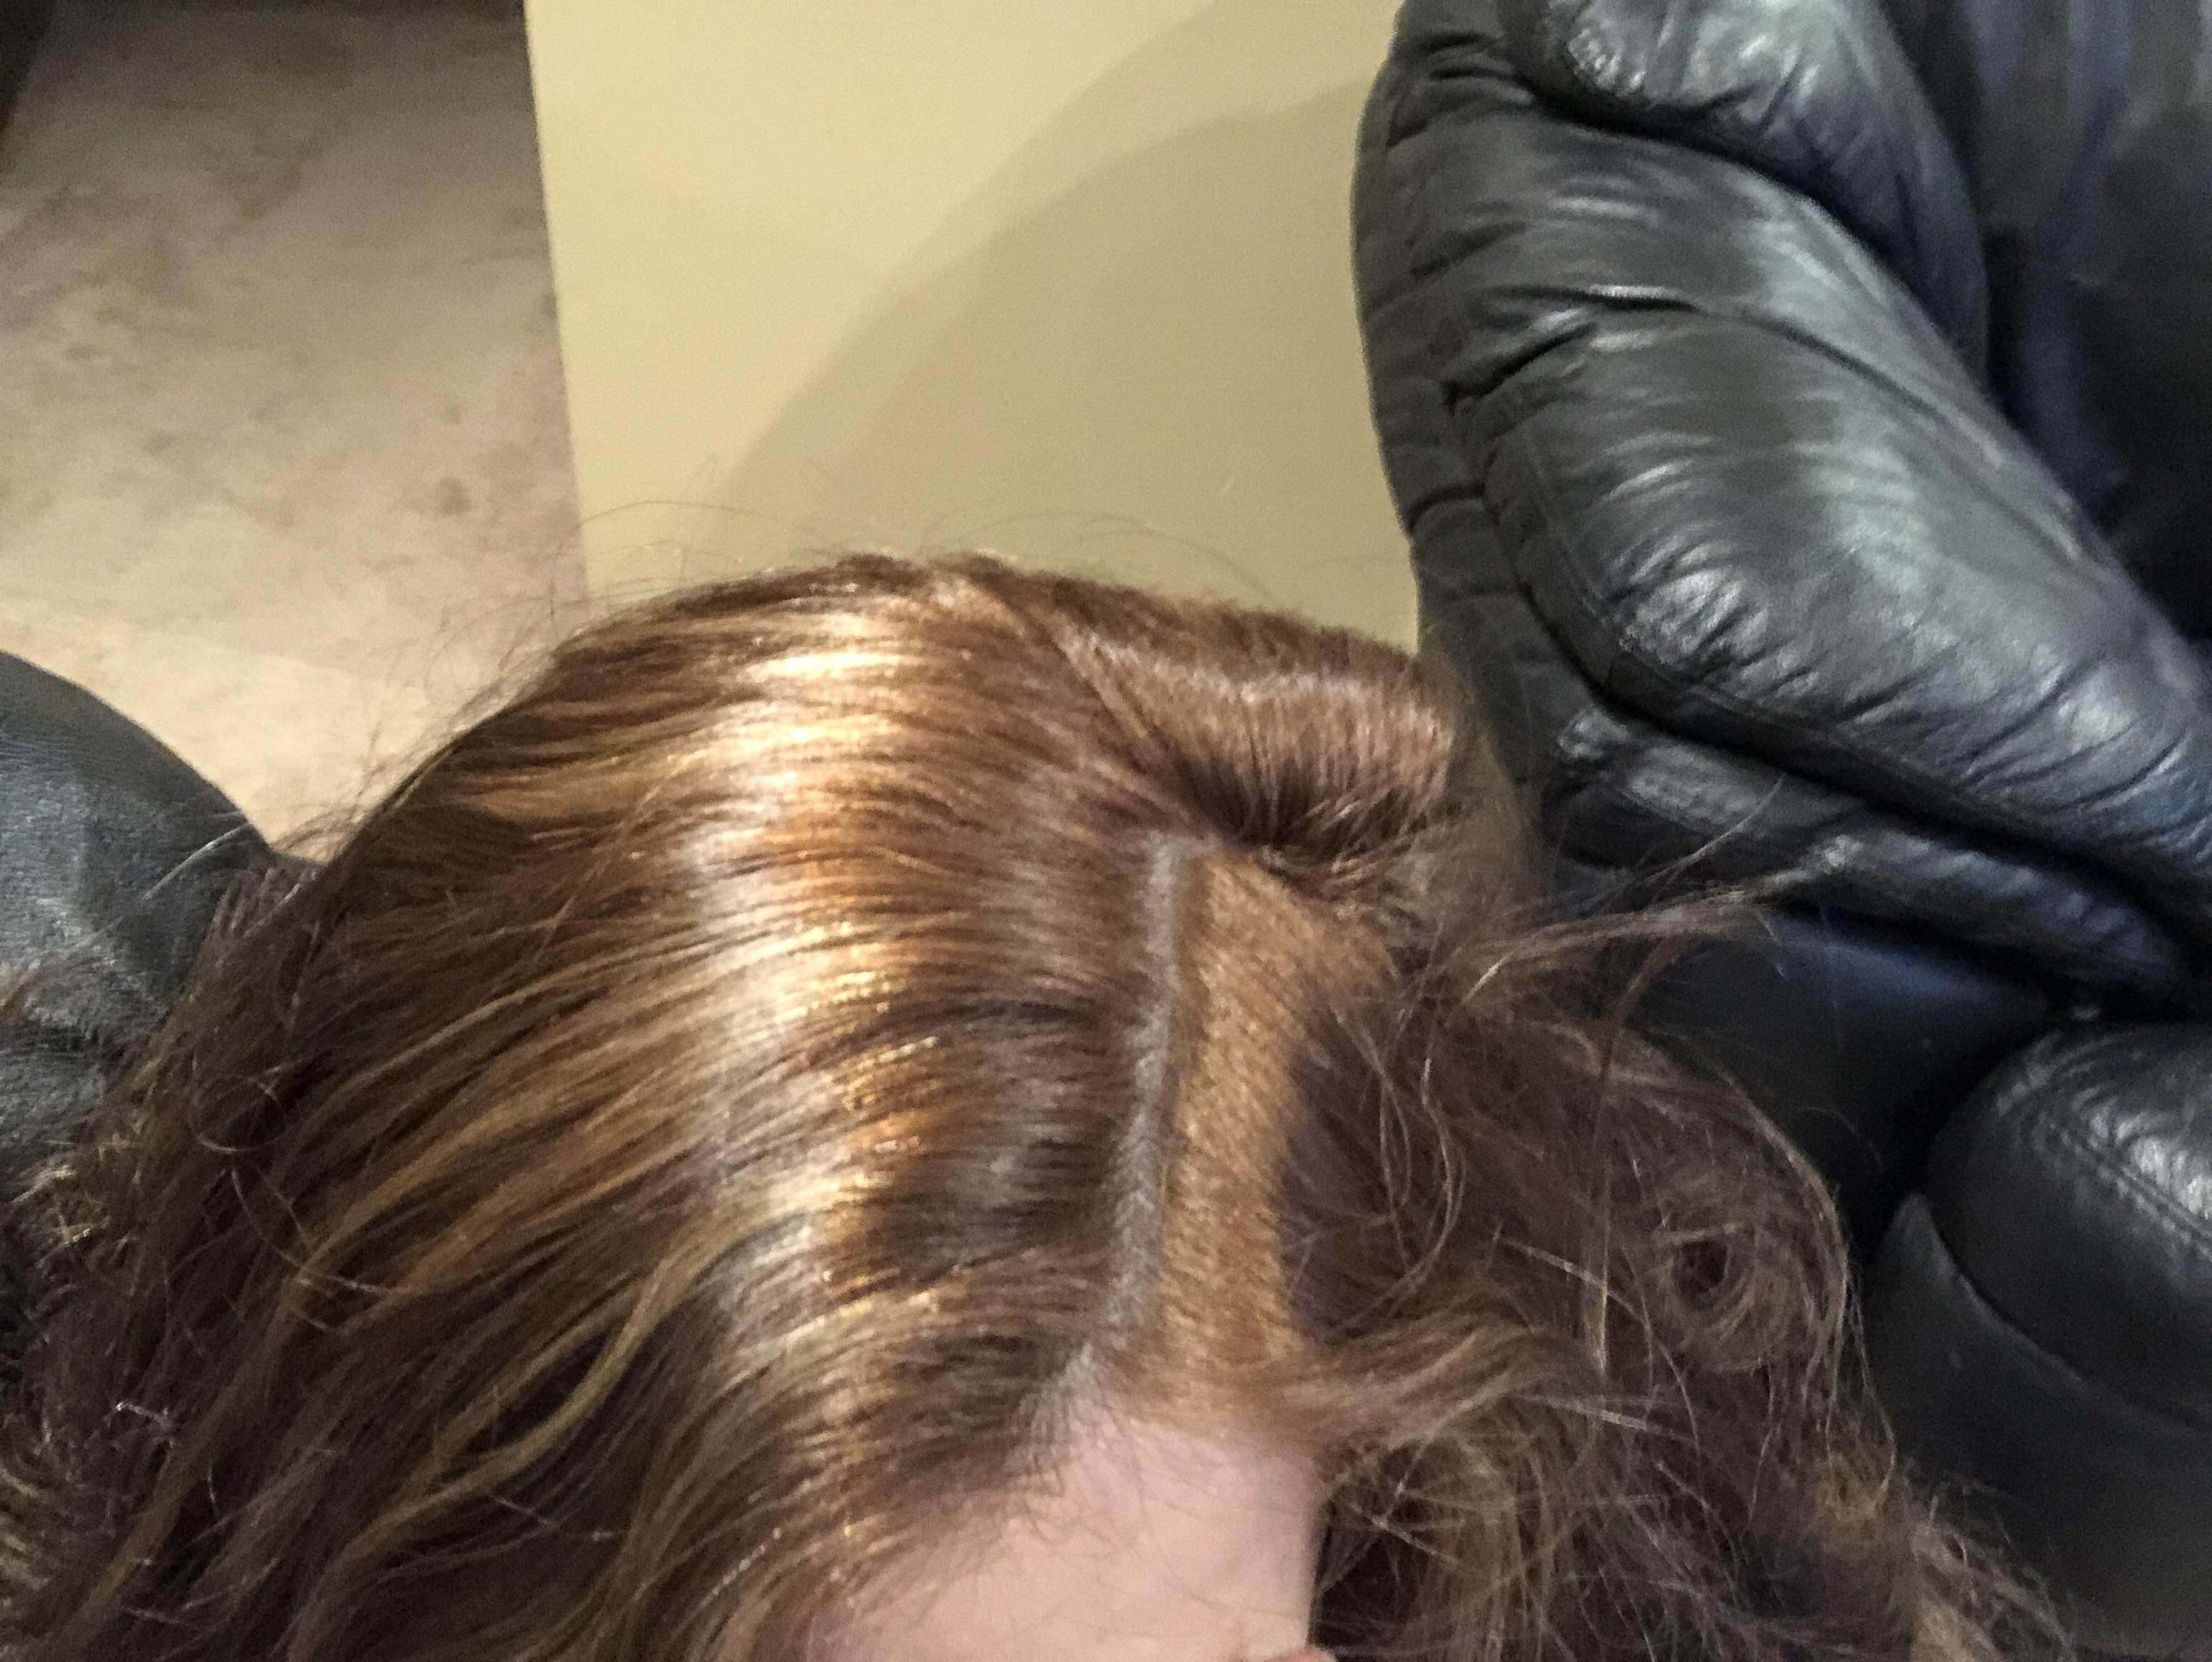 I Toned My Hair With Wella T18 With A 20 Delevloper And My Dark Brown Roots Hair Turned Orange Will This Wash Off How Can I Fix Th Roots Hair Wella